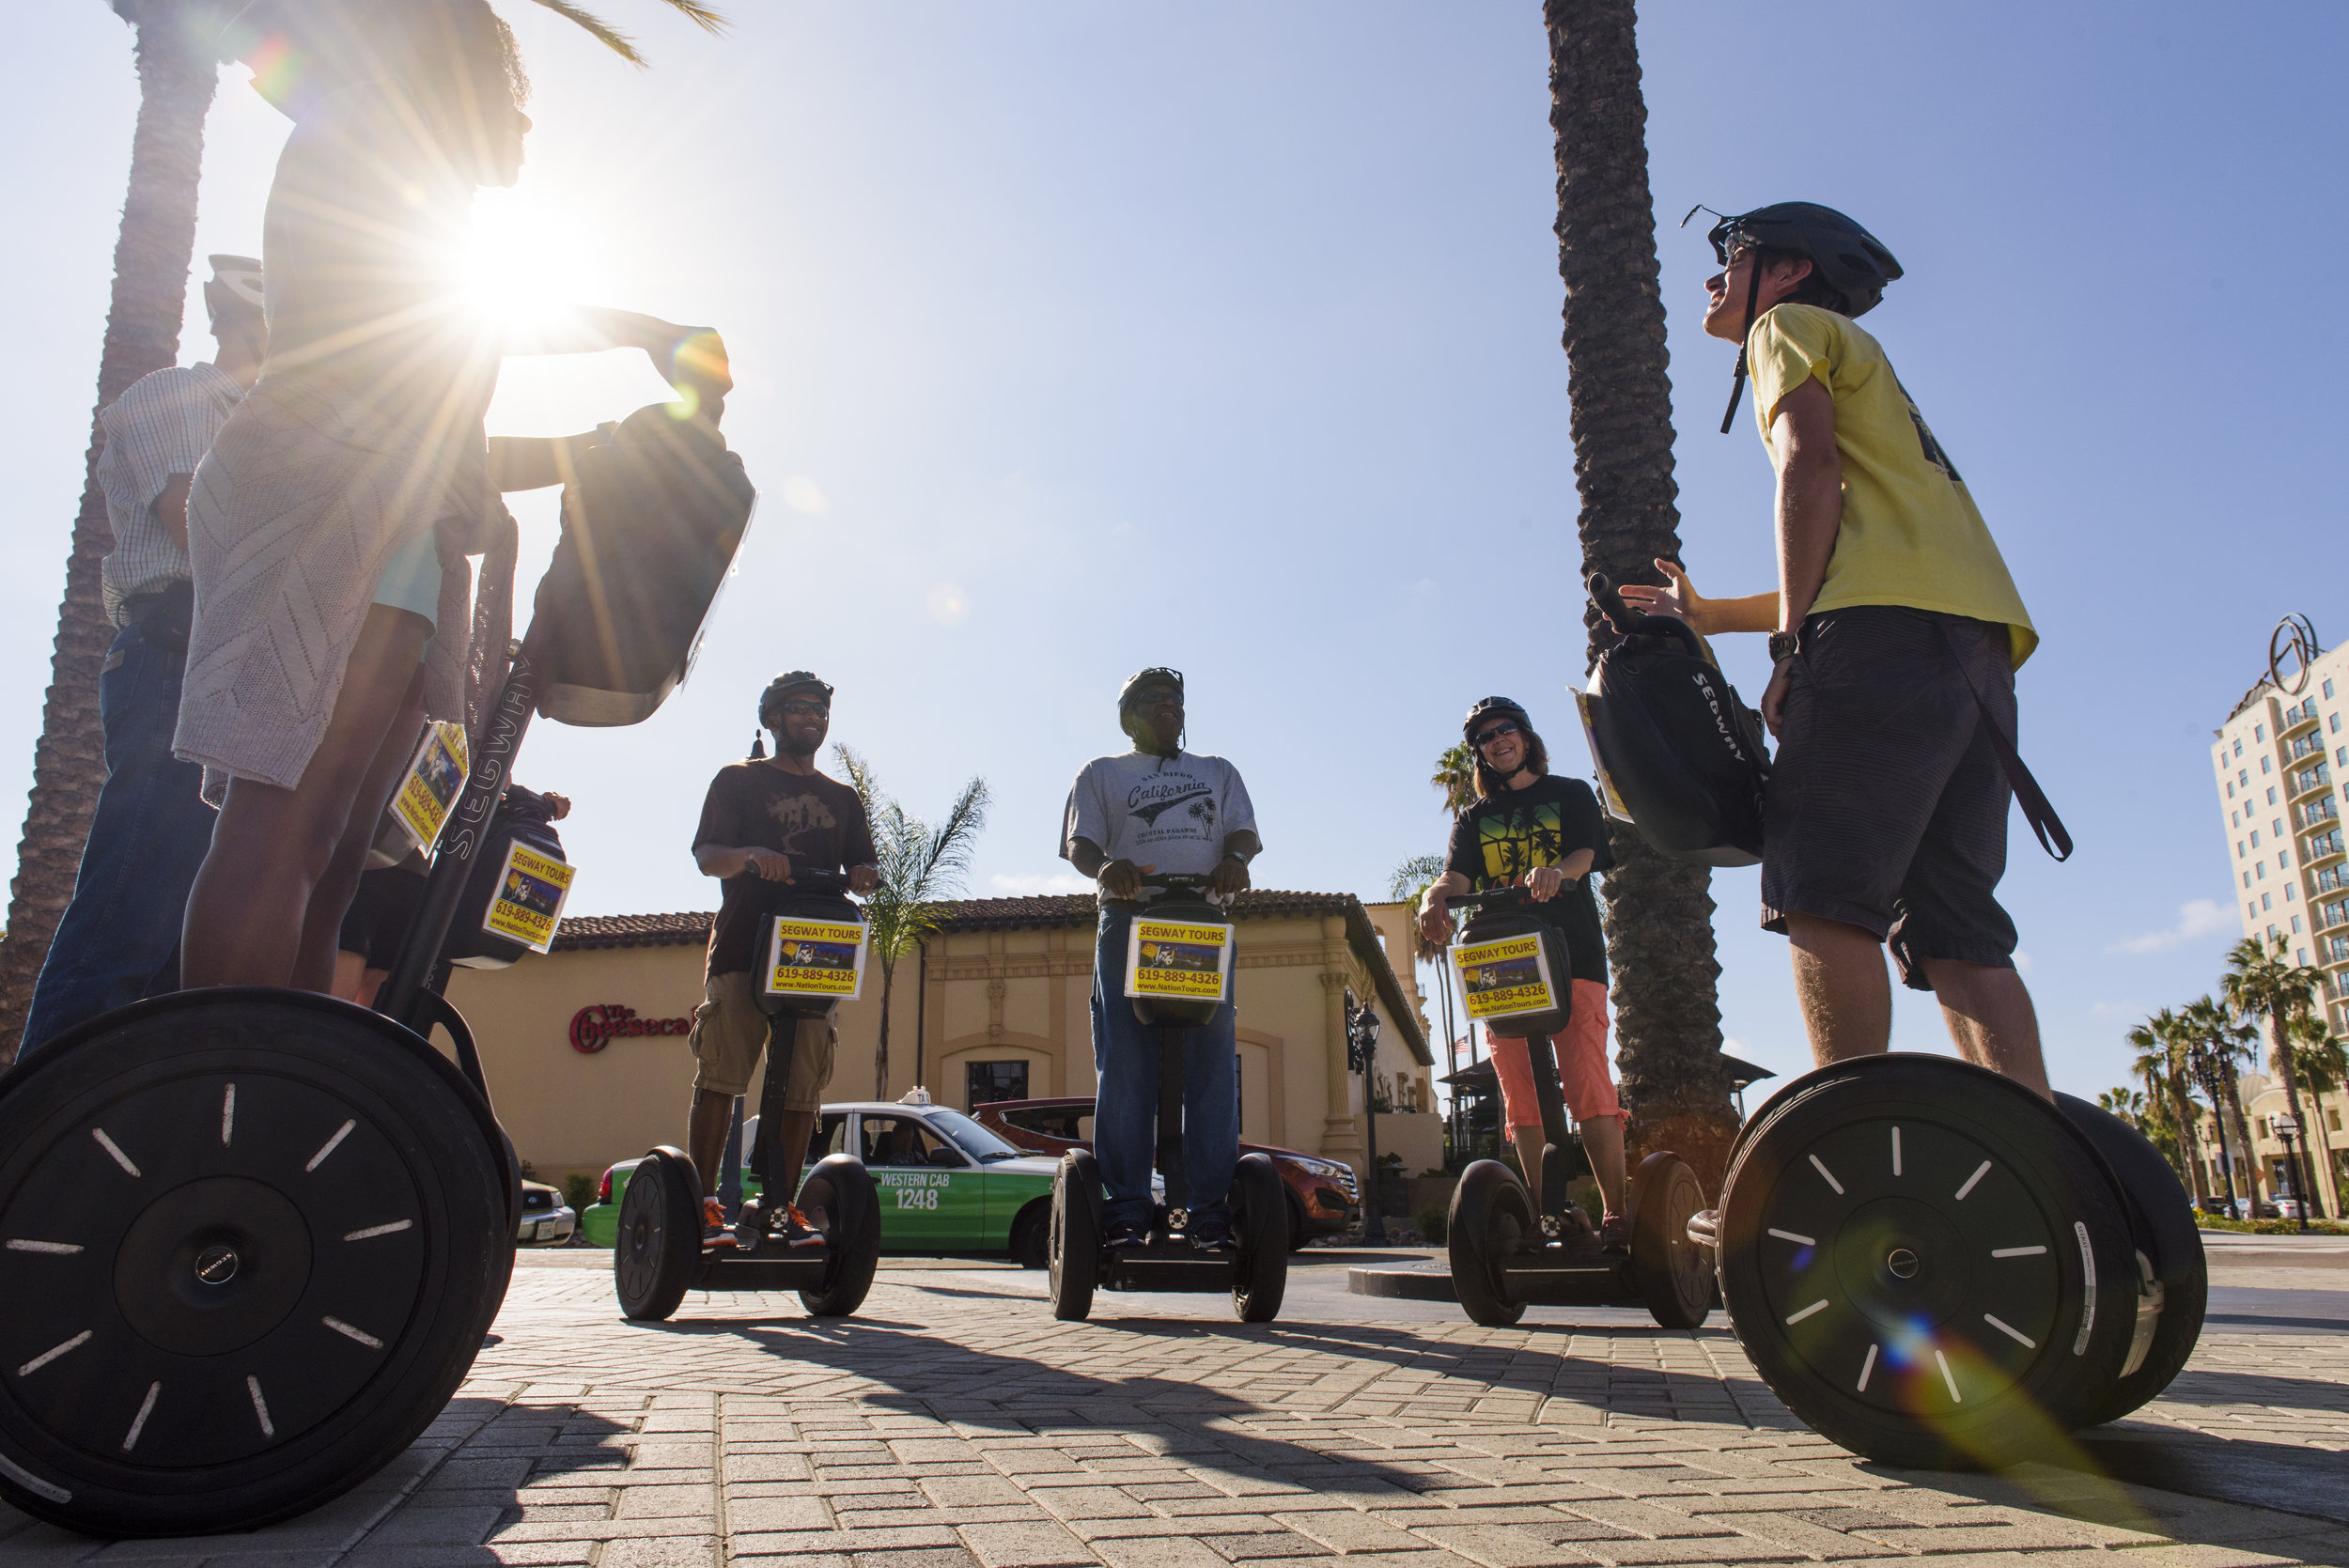 Segway_Tourism_NT San Diego_D810_101515 (285 of 343).jpg